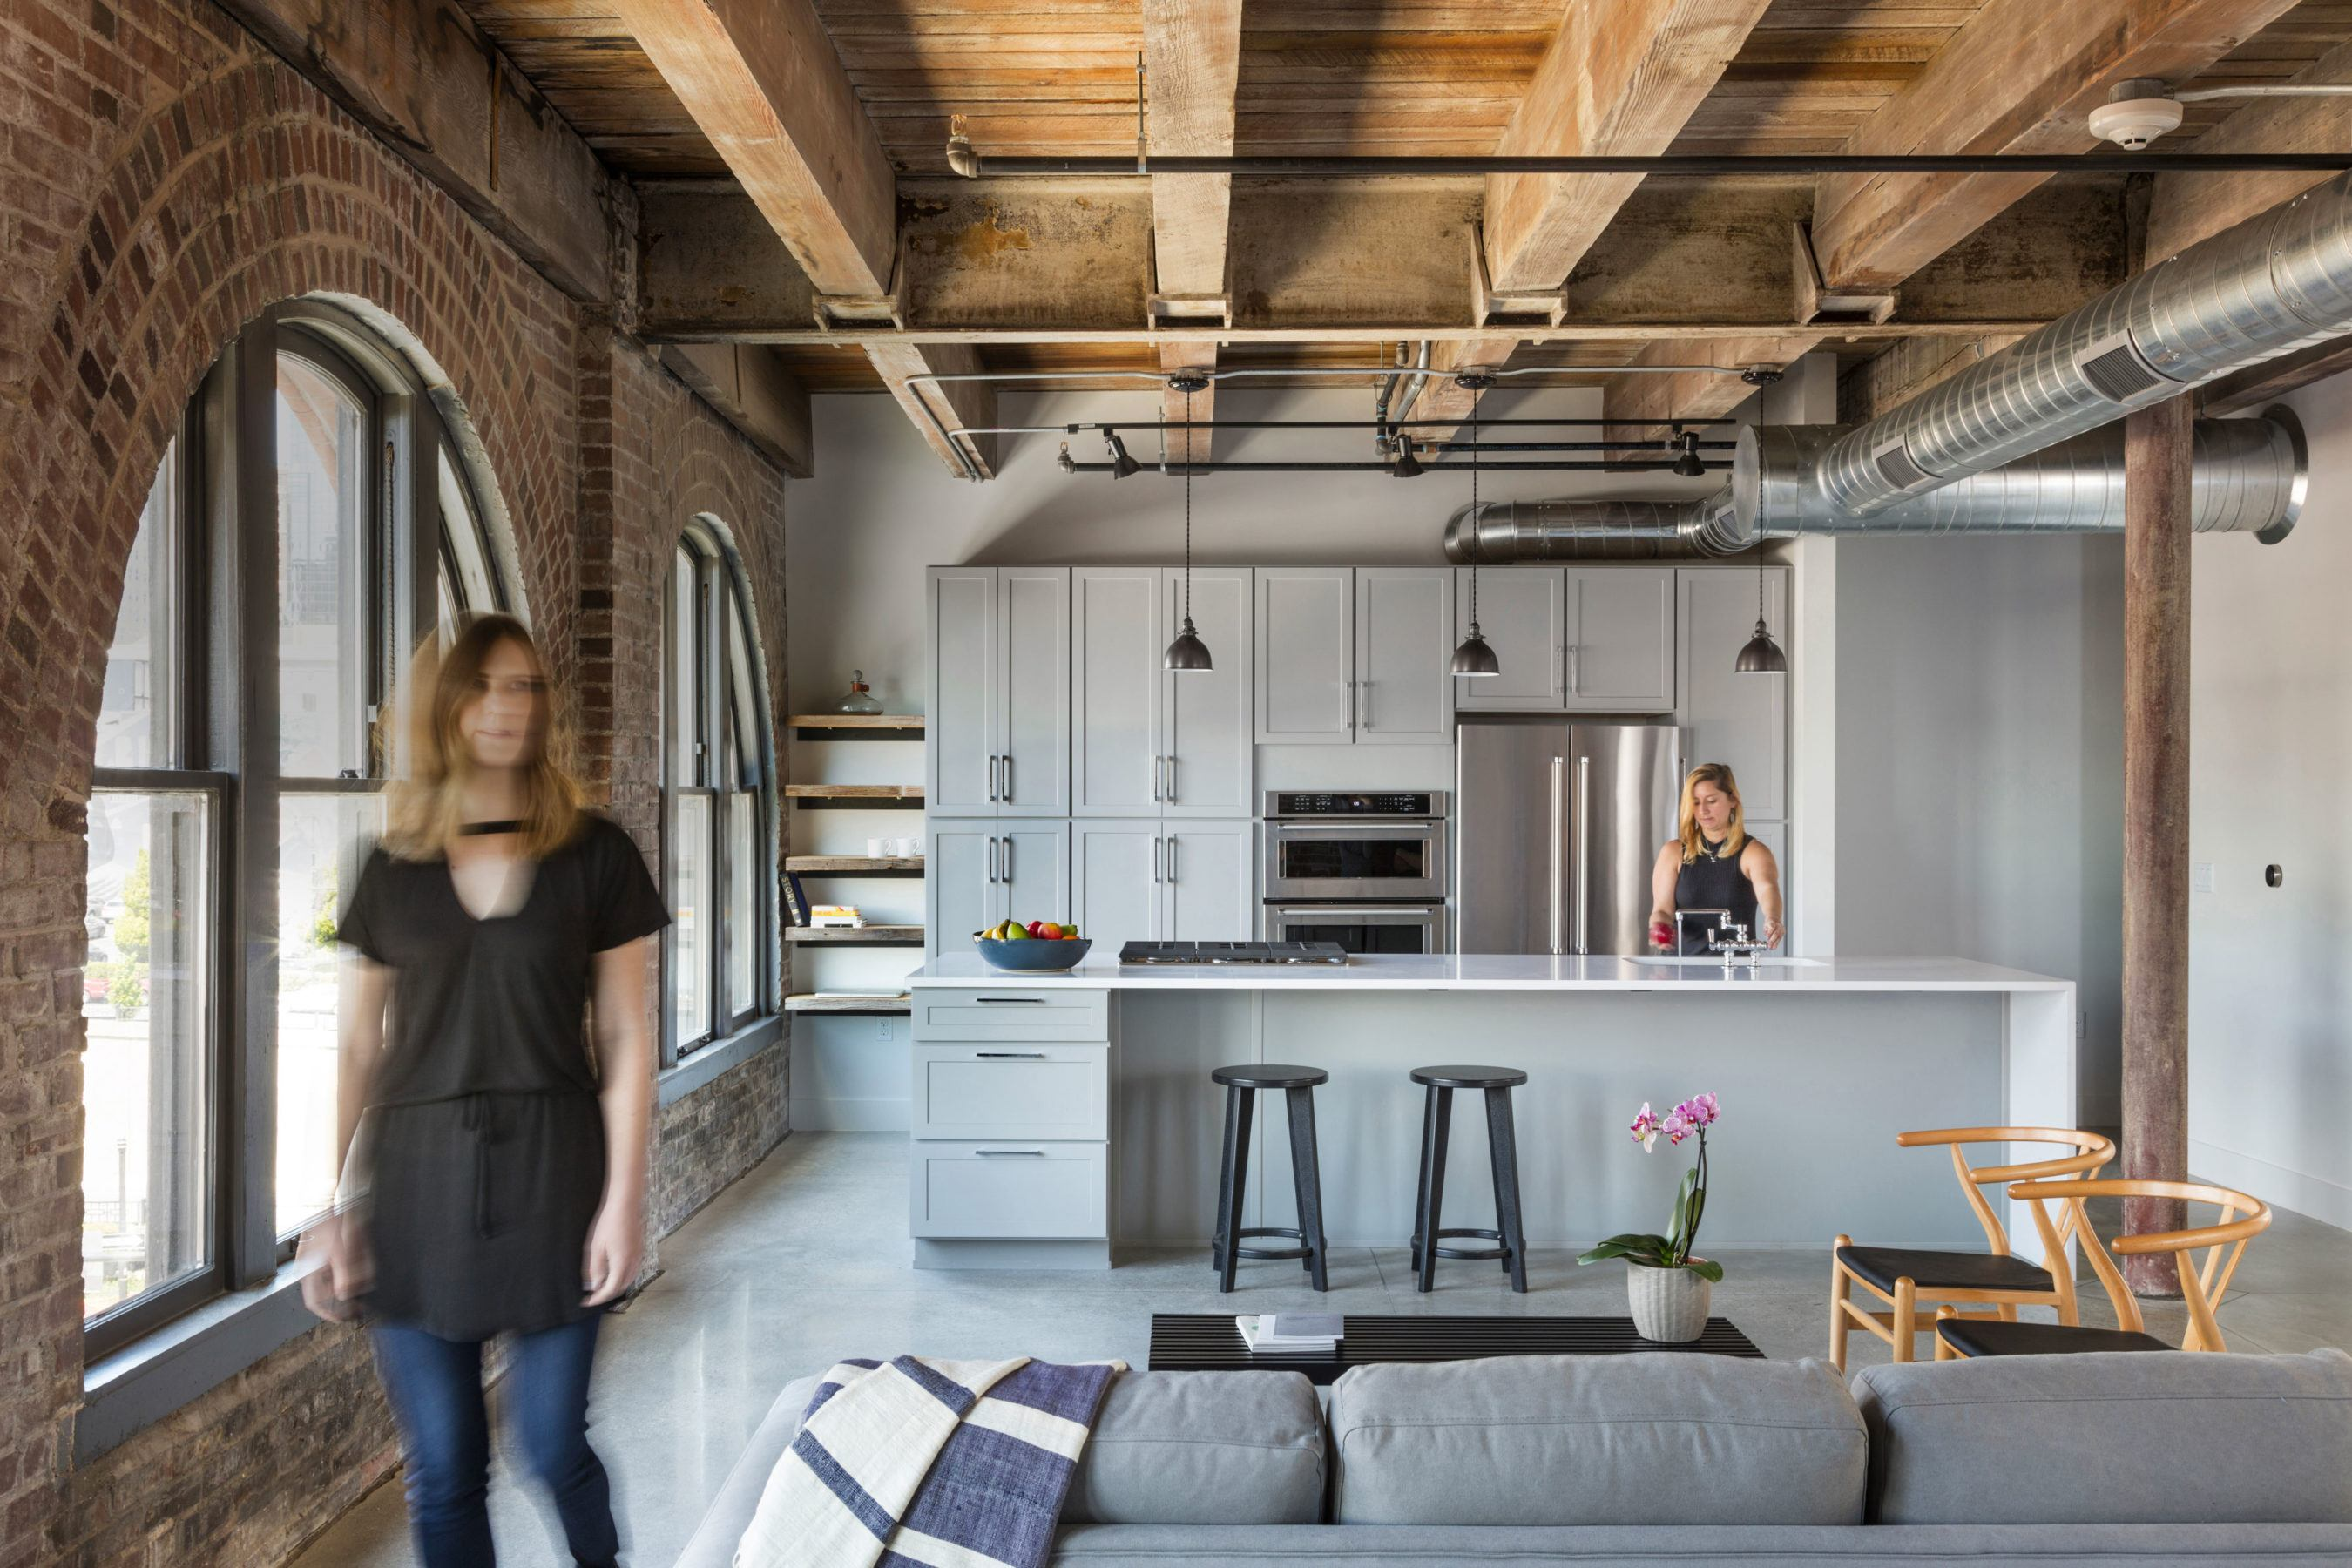 Refining a historic warehouse into beautifully designed apartment homes